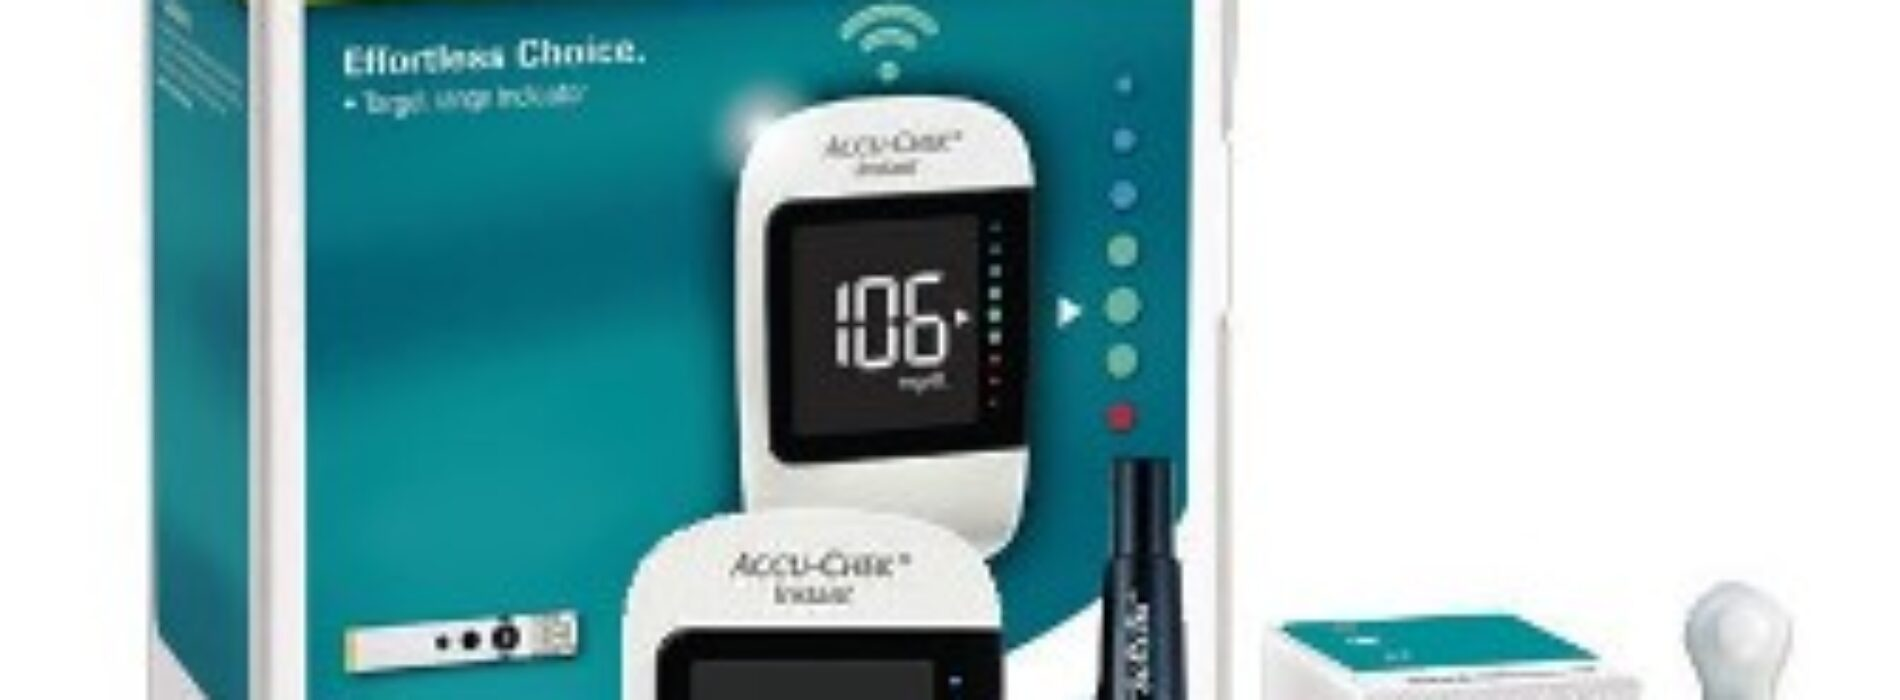 Roche launches Accu-Chek Instant, new blood glucose monitoring device